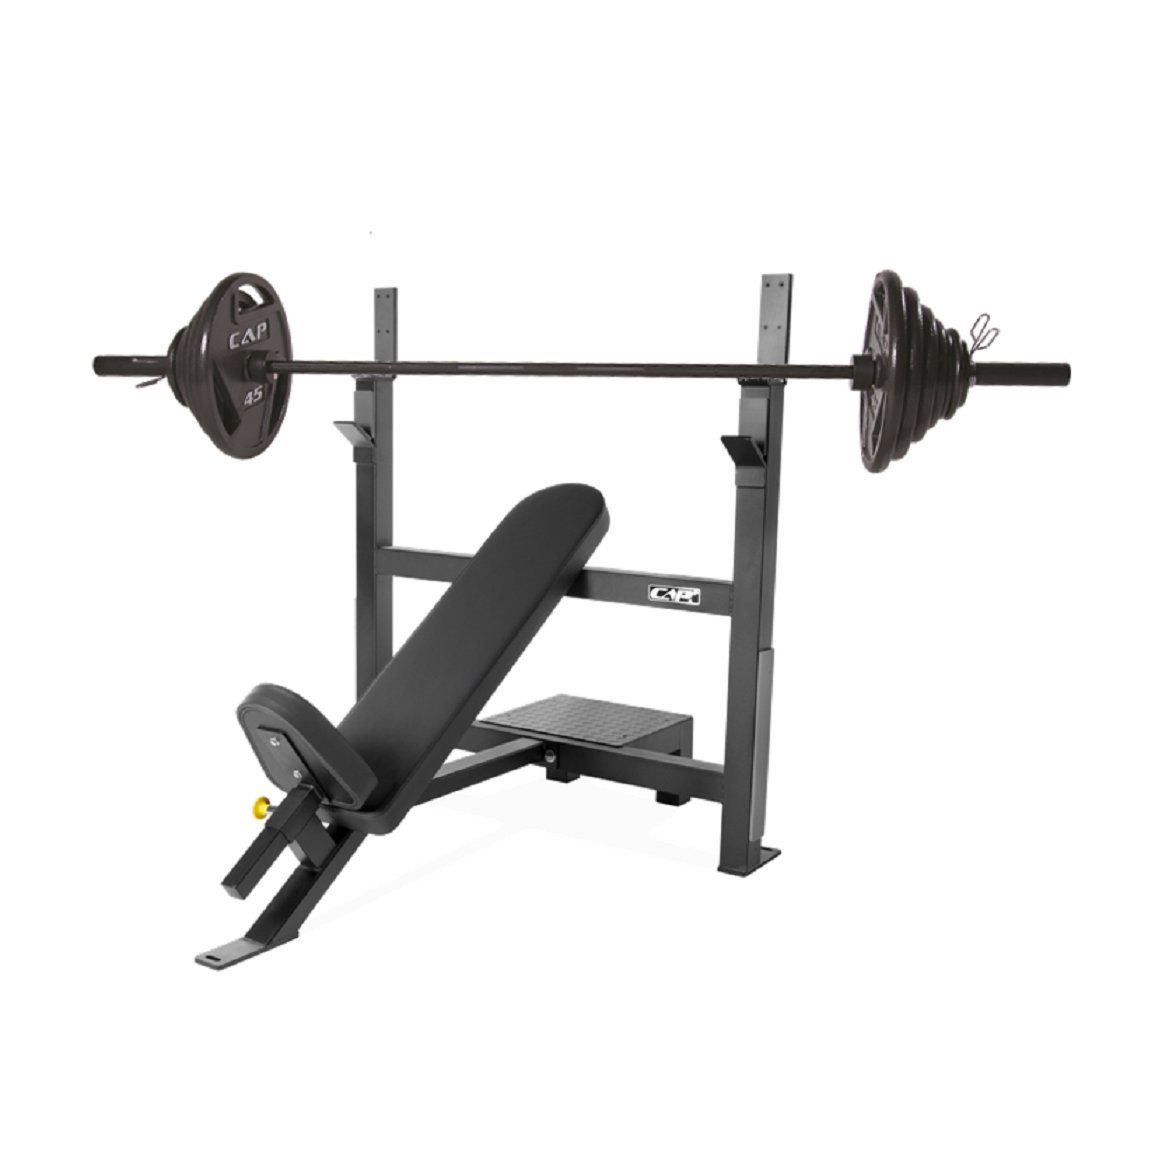 CAP Barbell 300-Pound Black Olympic Grip Set with Olympic Incline Bench